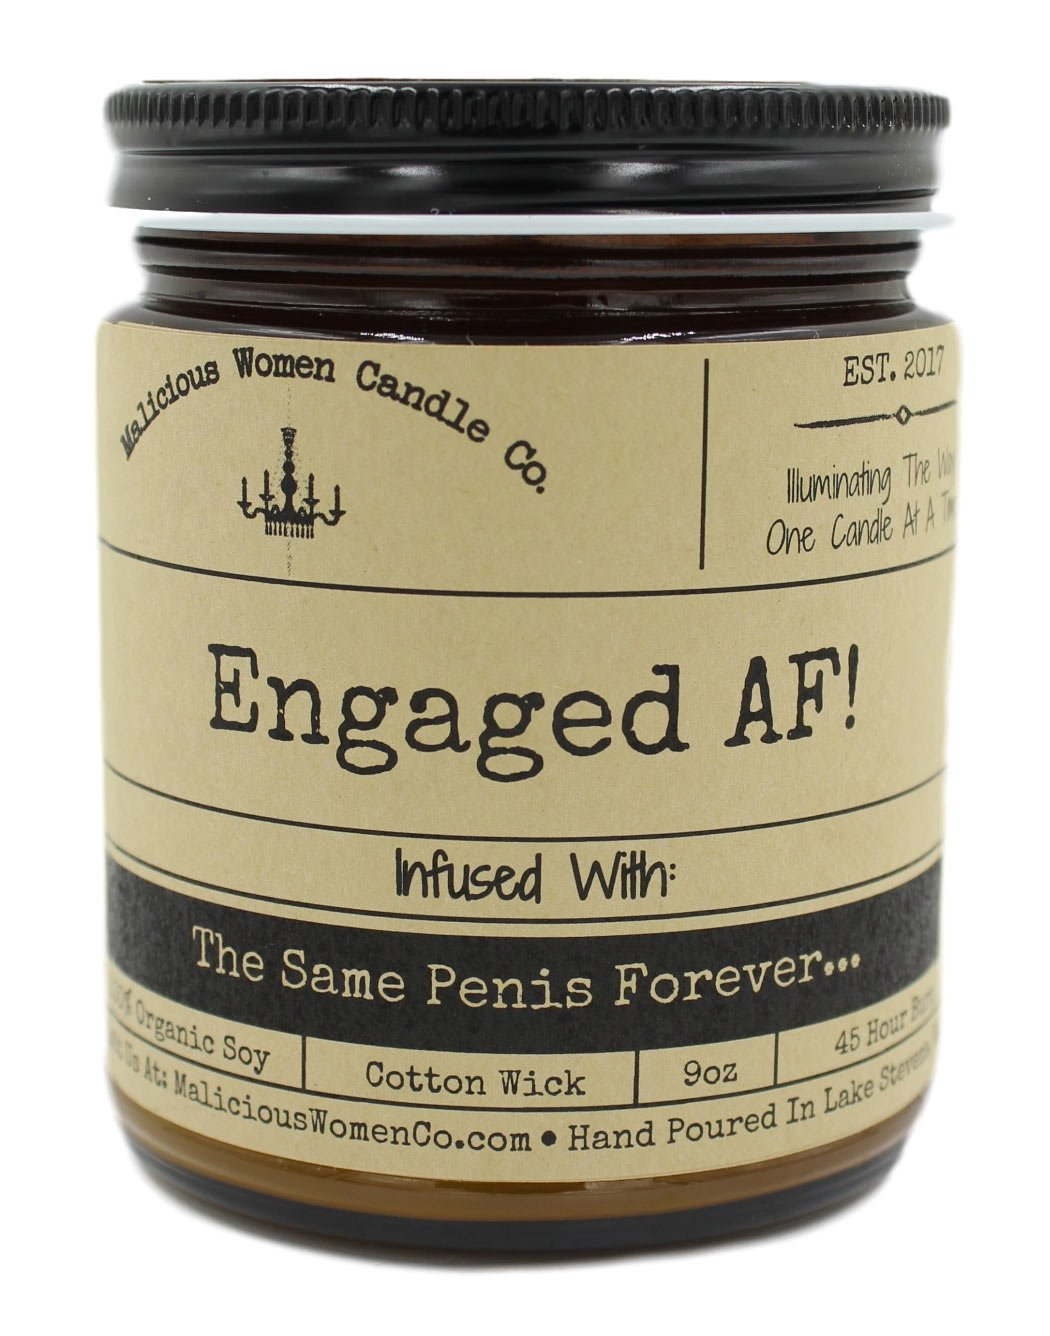 Malicious Women Candle Co. Engaged AF, White Tea & Ginger Infused with The Same Penis Forever, All-Natural Organic Soy Candle, 9 oz